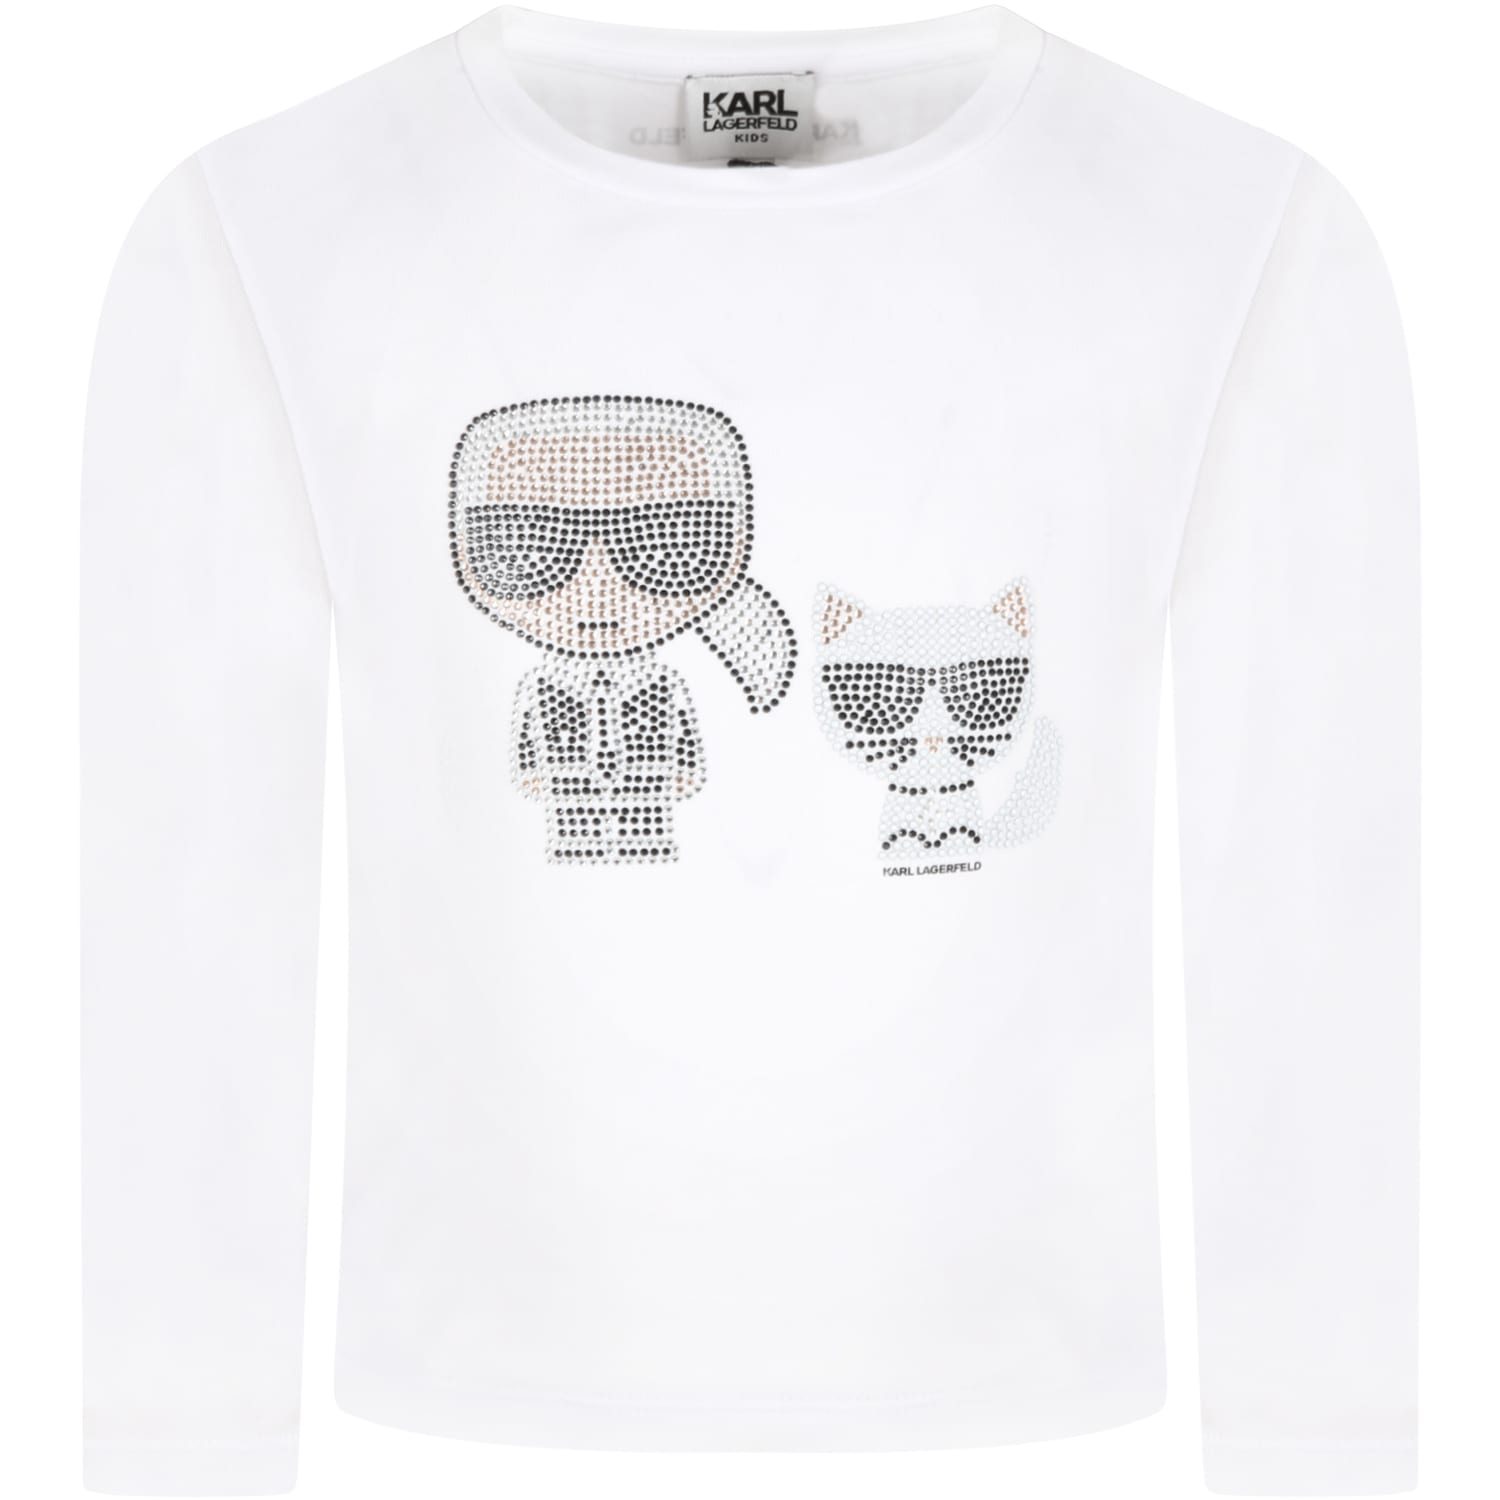 White T-shirt For Girl With Karl